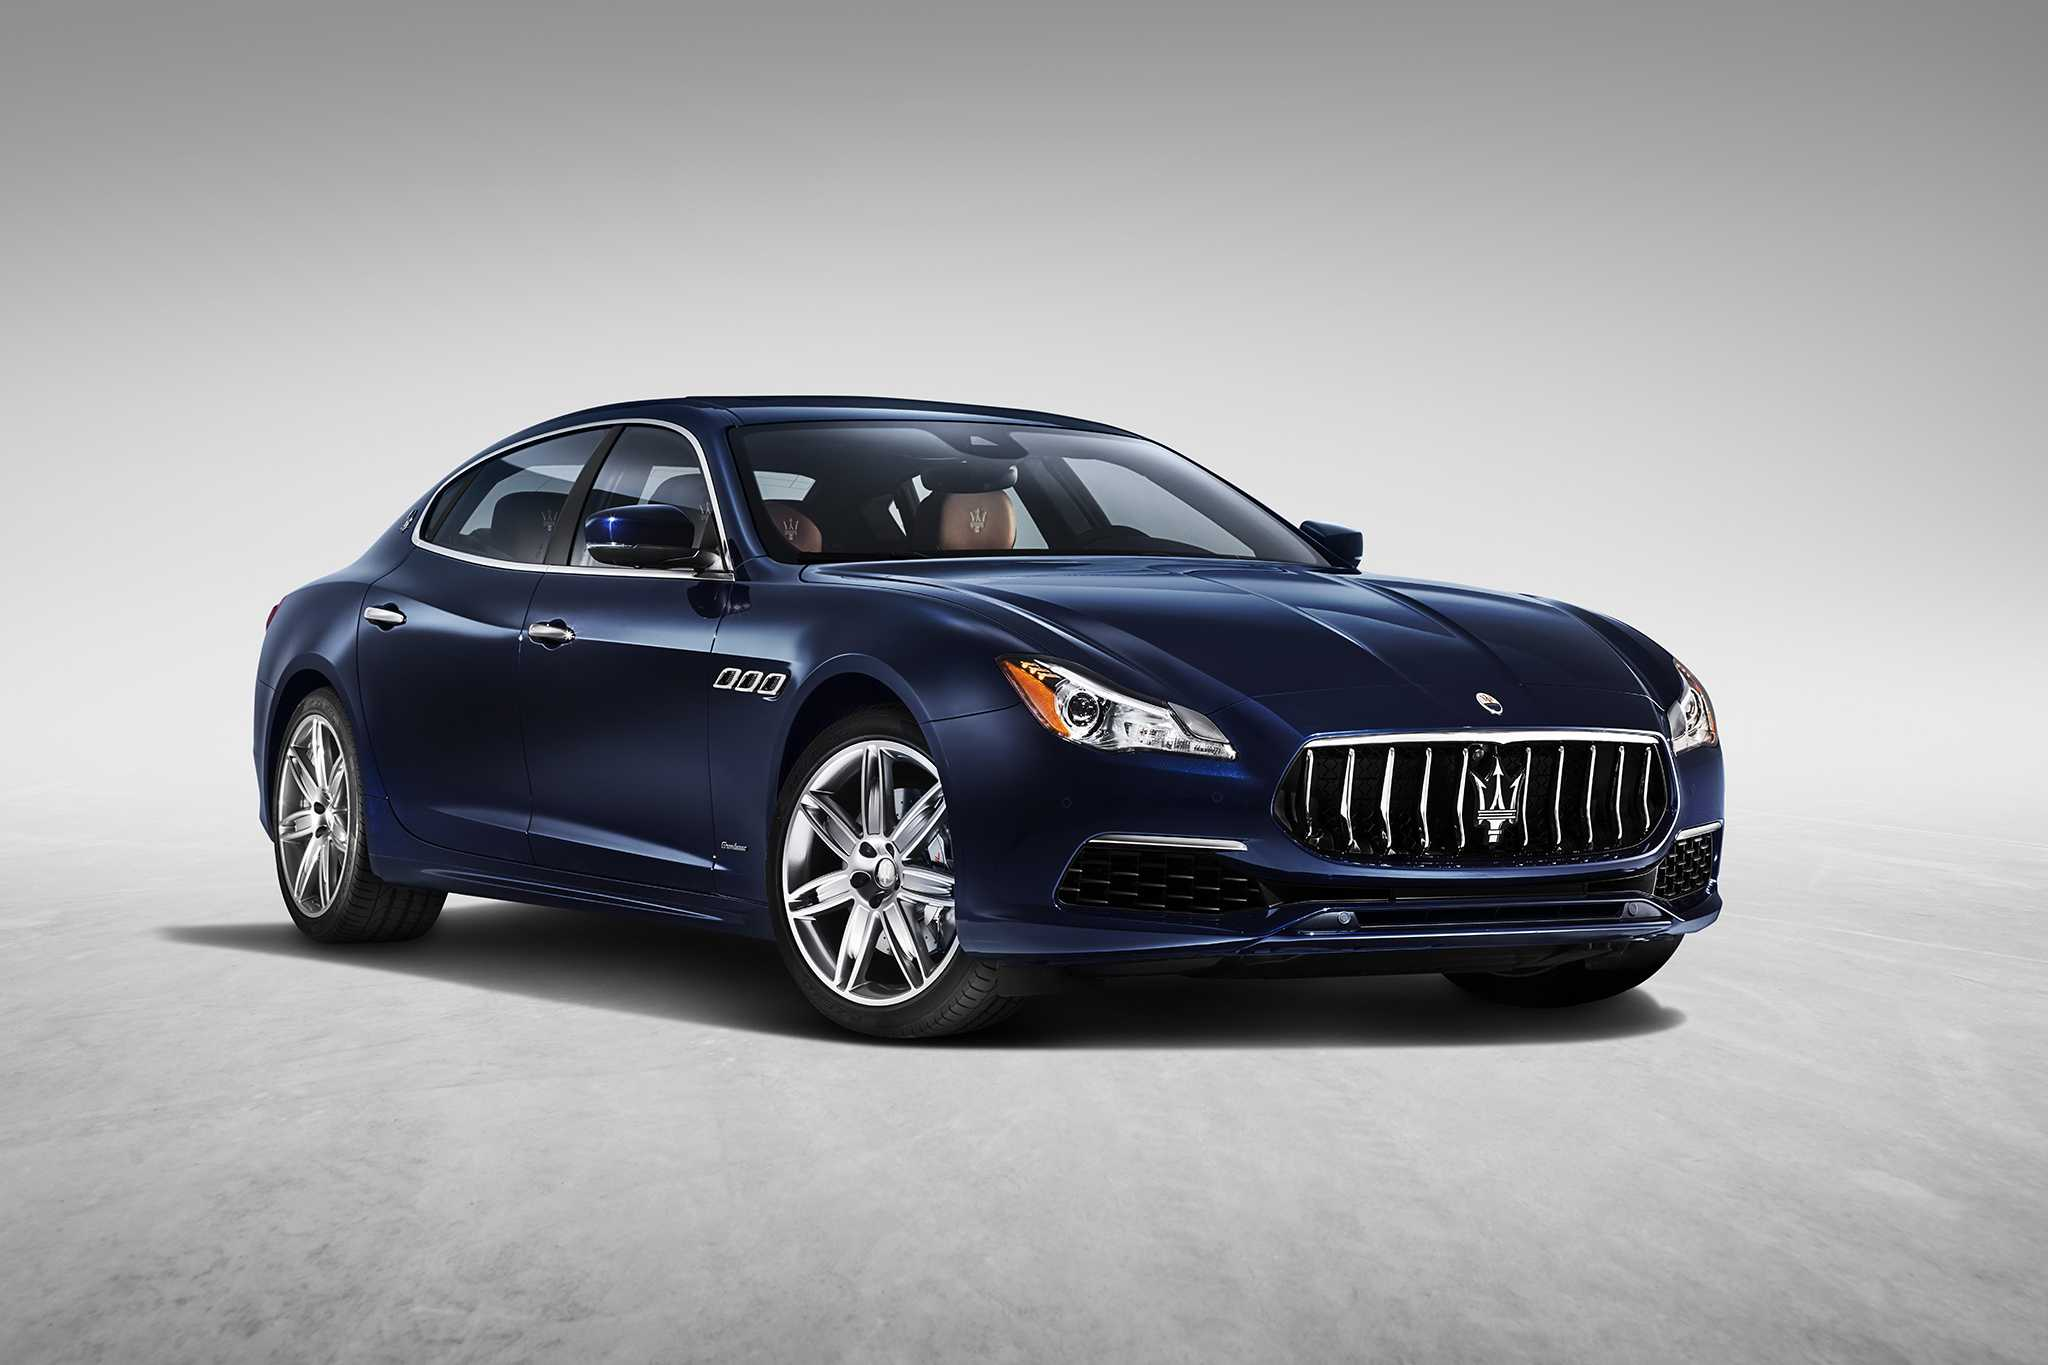 2017 Maserati Quattroporte Gets Updated, New Trim Levels and Packages